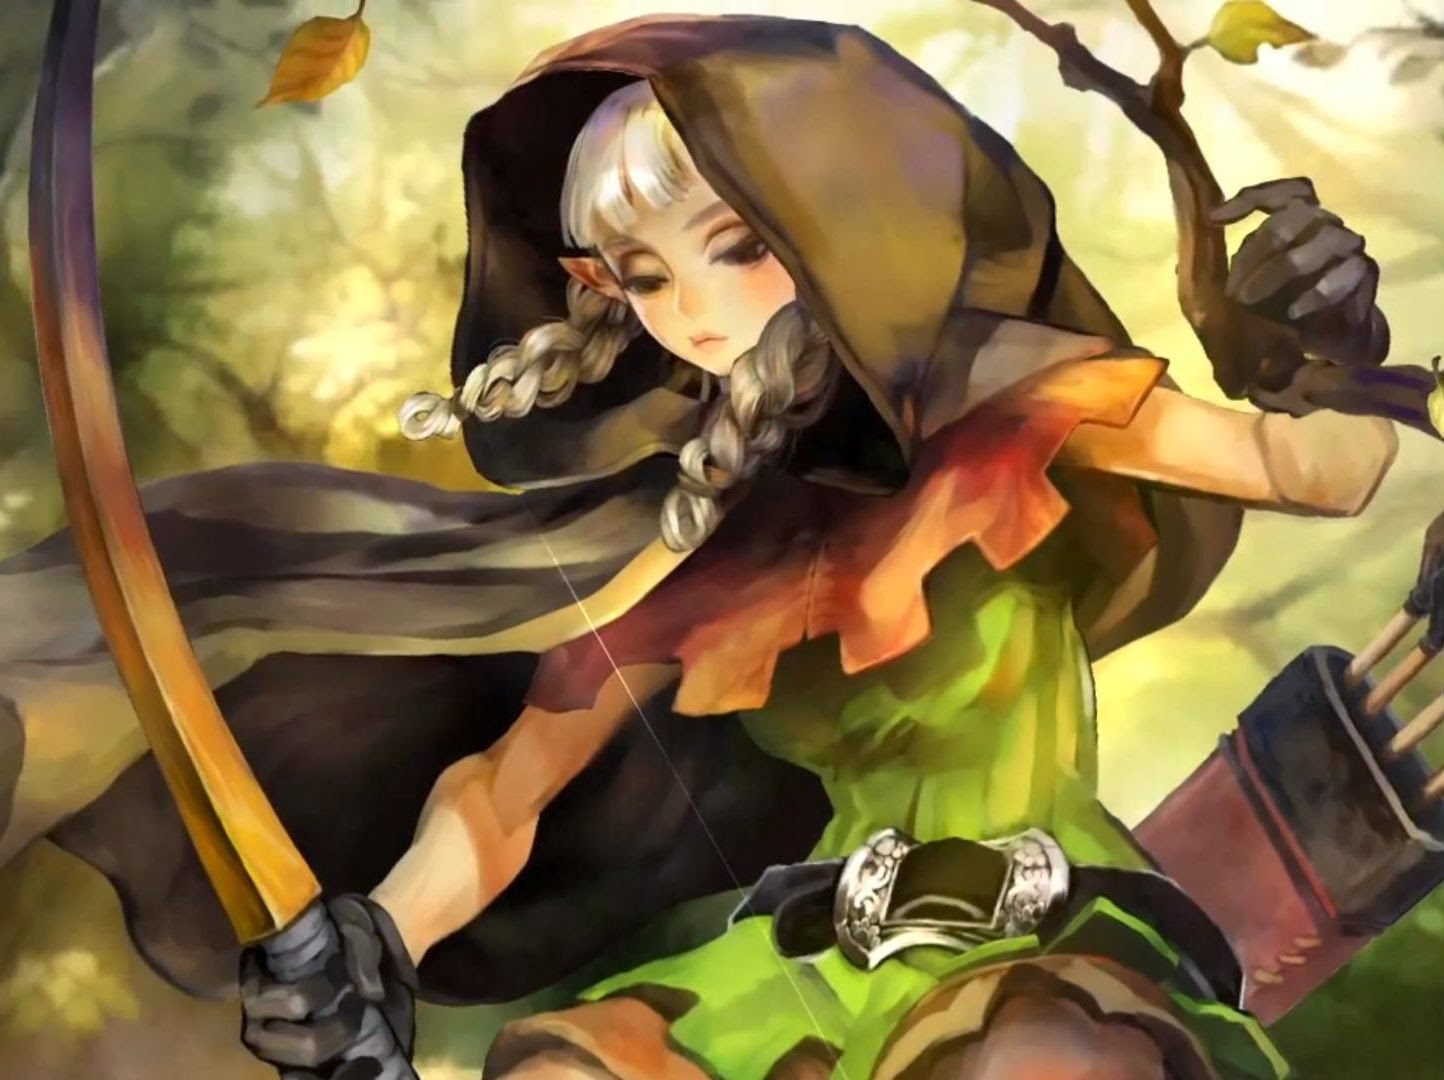 Dragon's crown pro gets shiny battle hardened edition • collect a box.